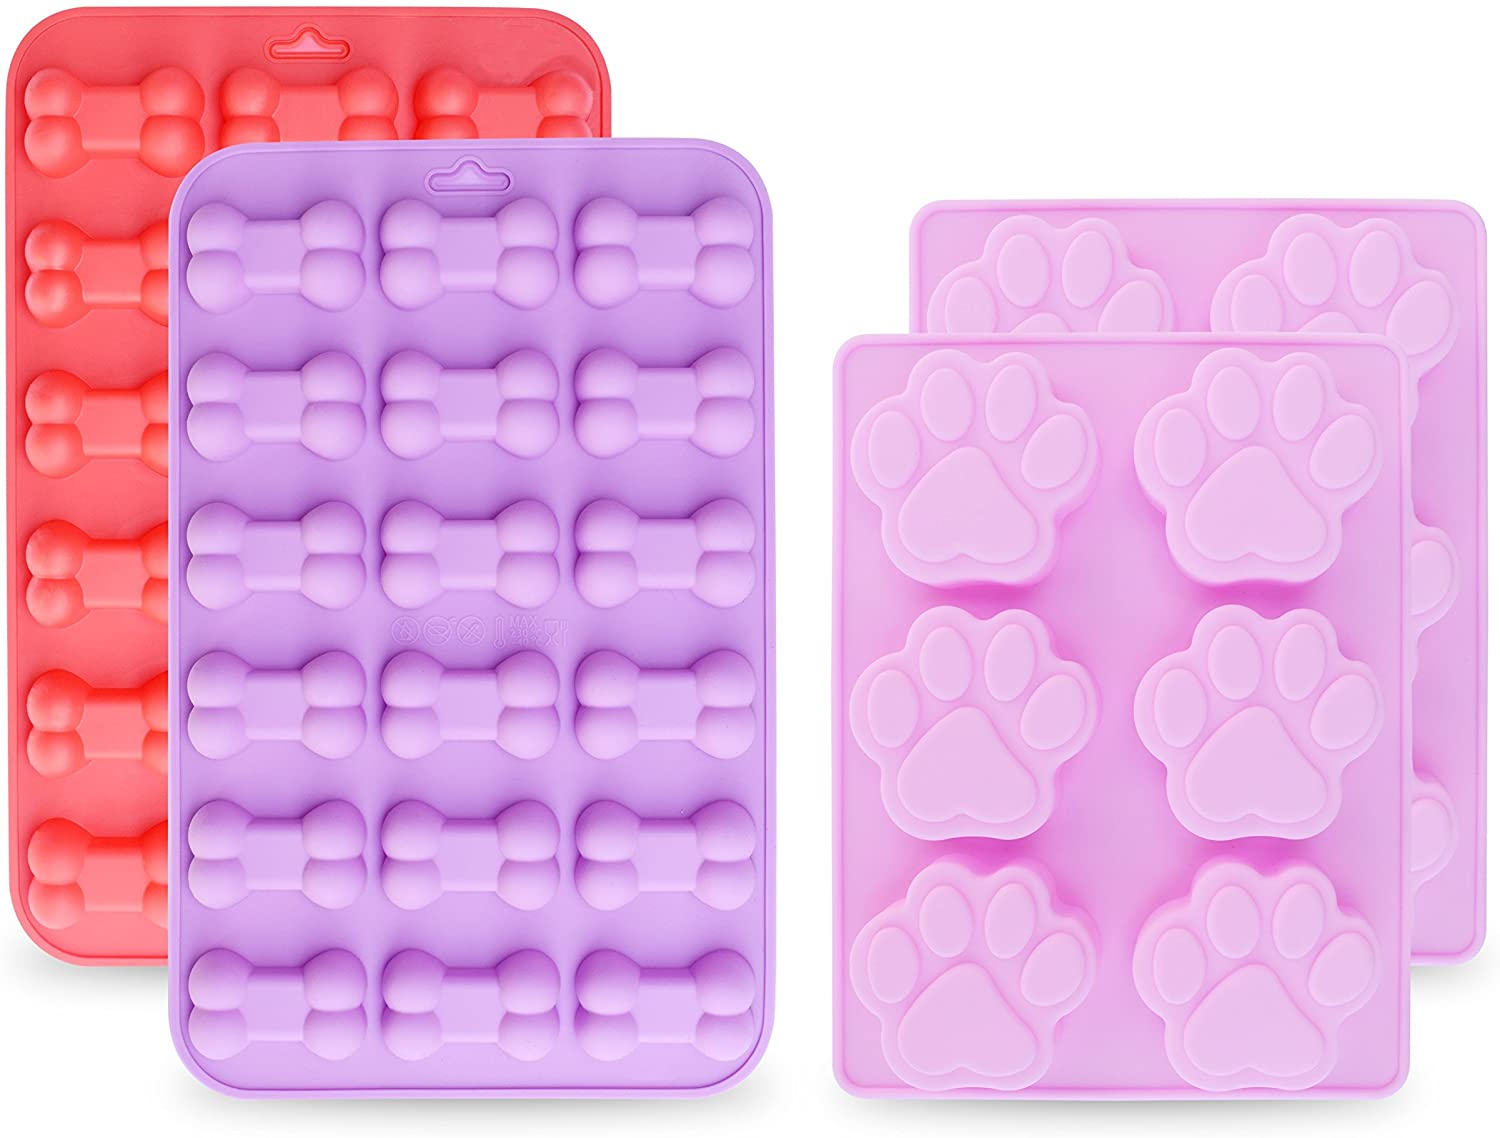 homEdge Jumbo Puppy Dog Paw (6 Cavity) and Bone Molds, Non-Stick Food Grade Silicone Dog Treats Molds, Silicone Mold for Chocolate, Candy, Jelly, Ice Cube, Dog Treats (Set of 4PCS)